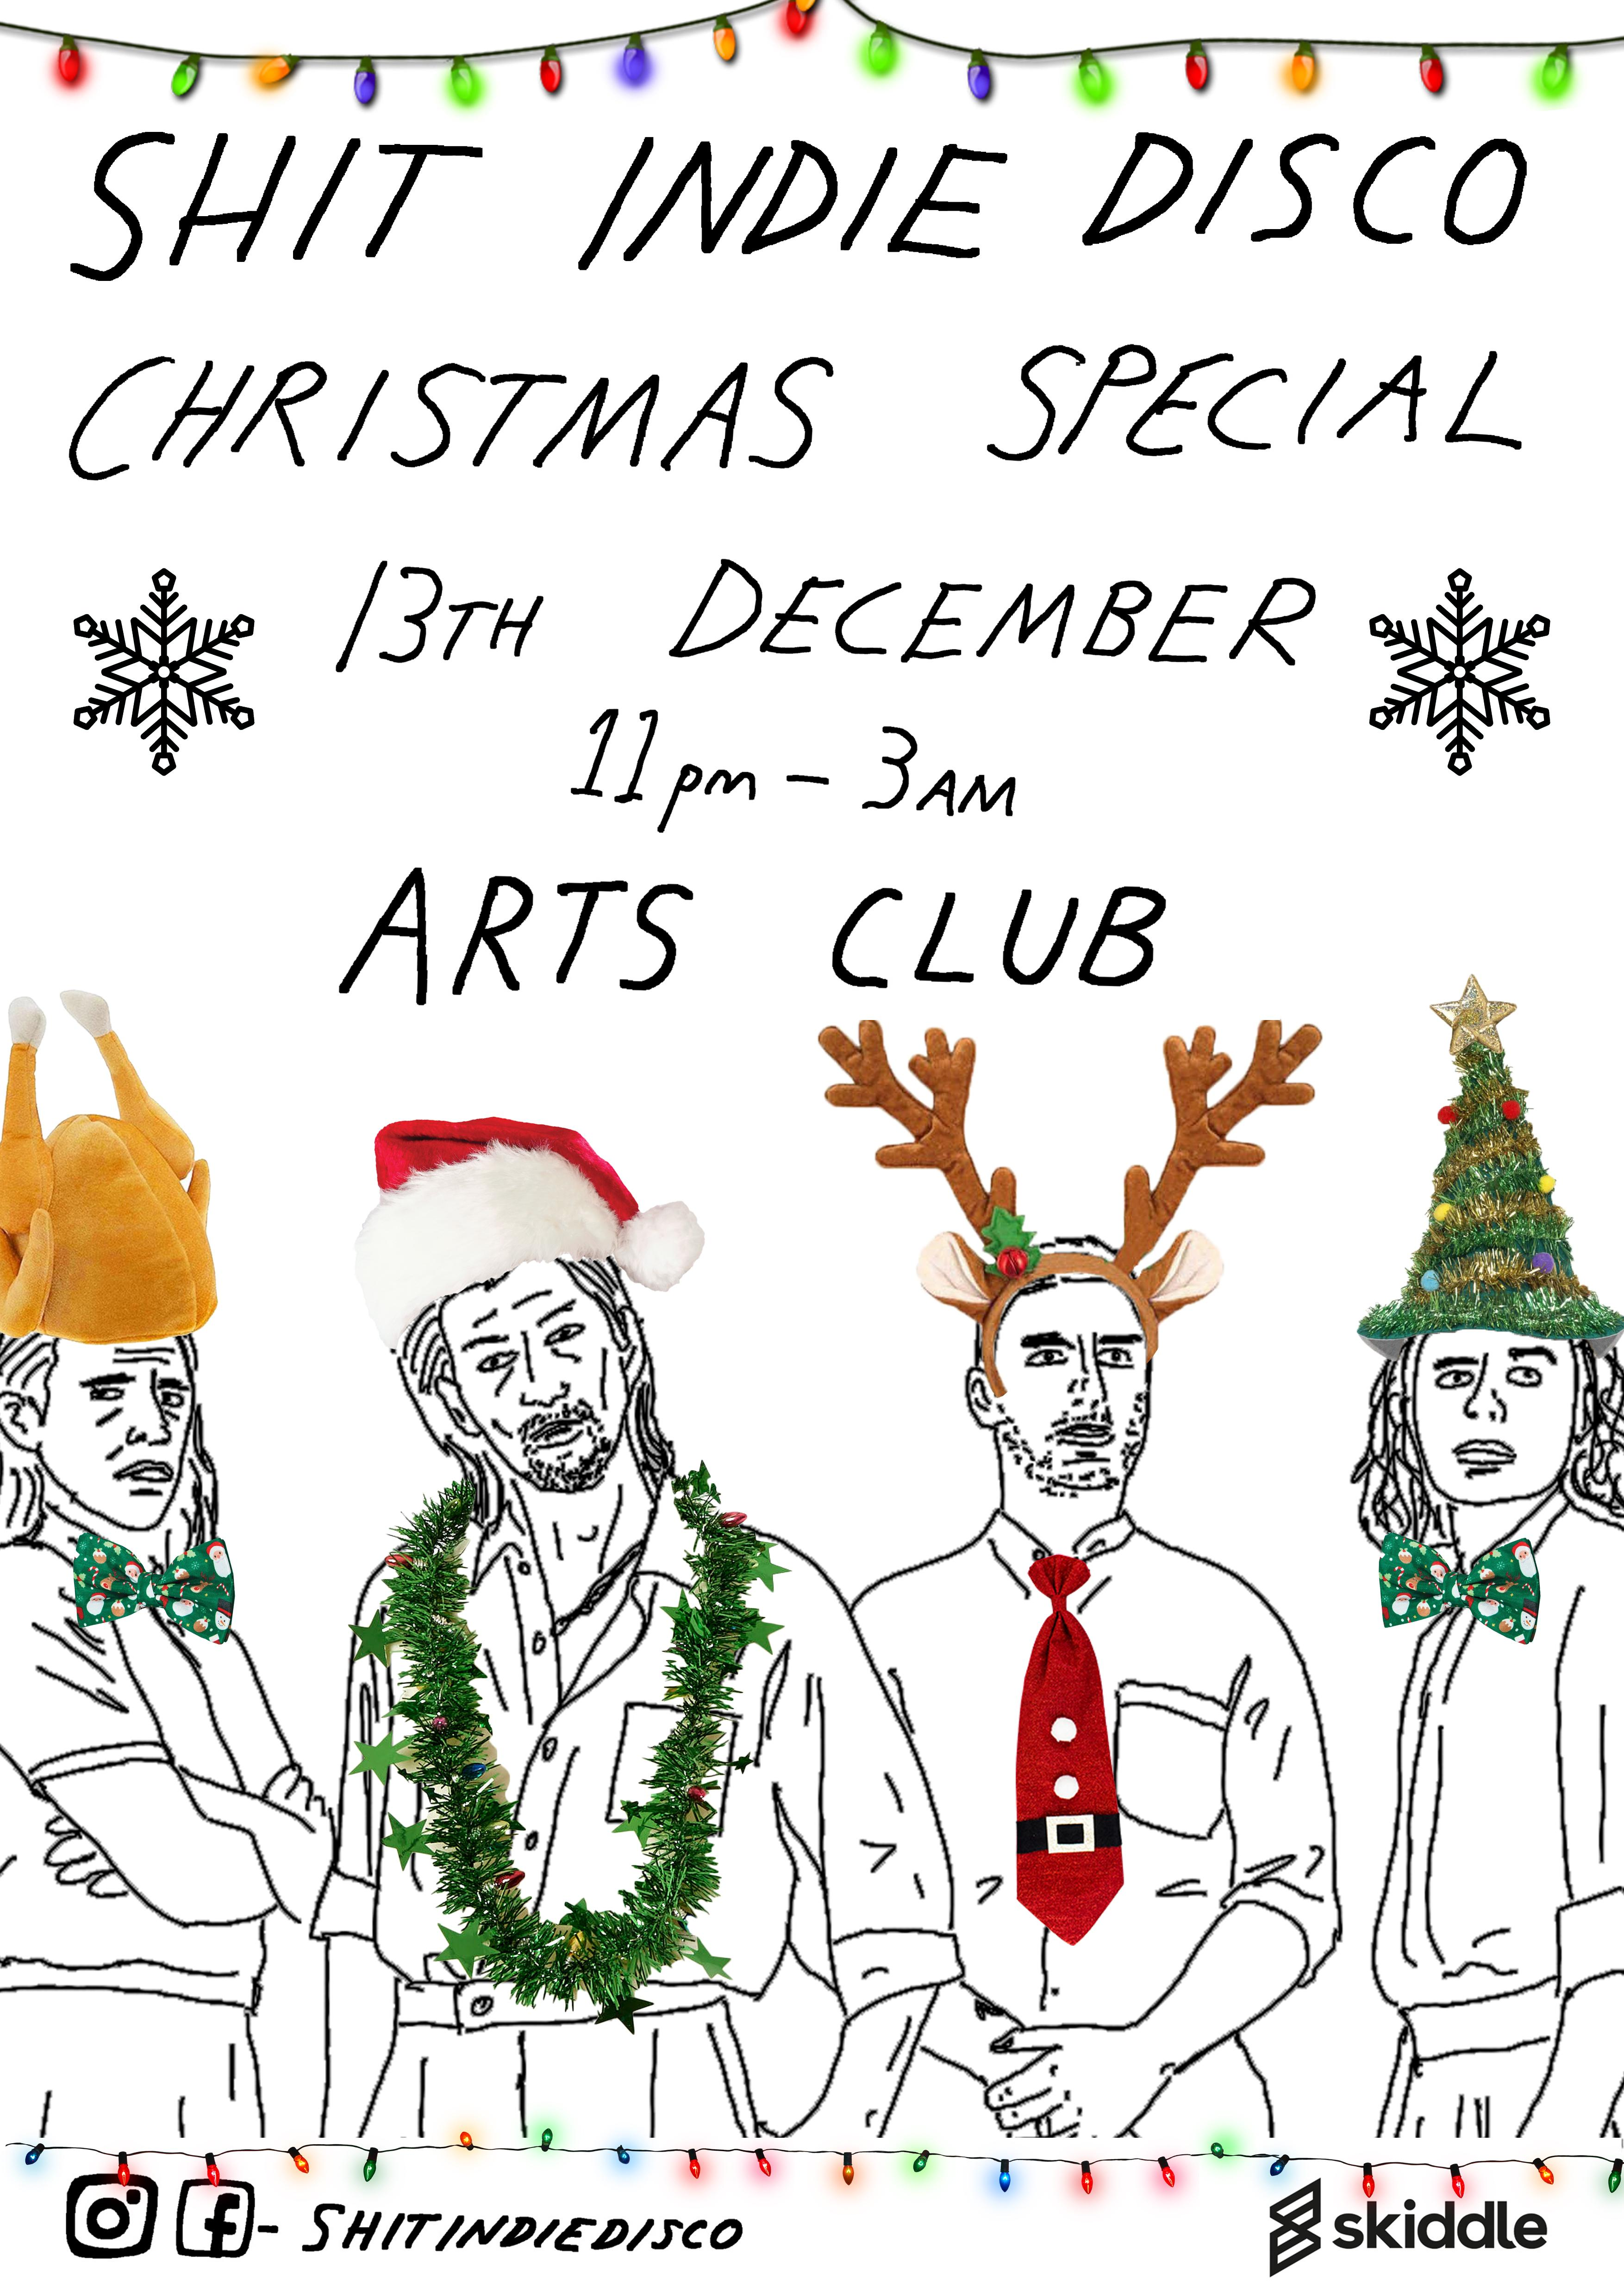 Shit Indie Disco - End Of Term/Xmas Special Tickets | Arts Club ...